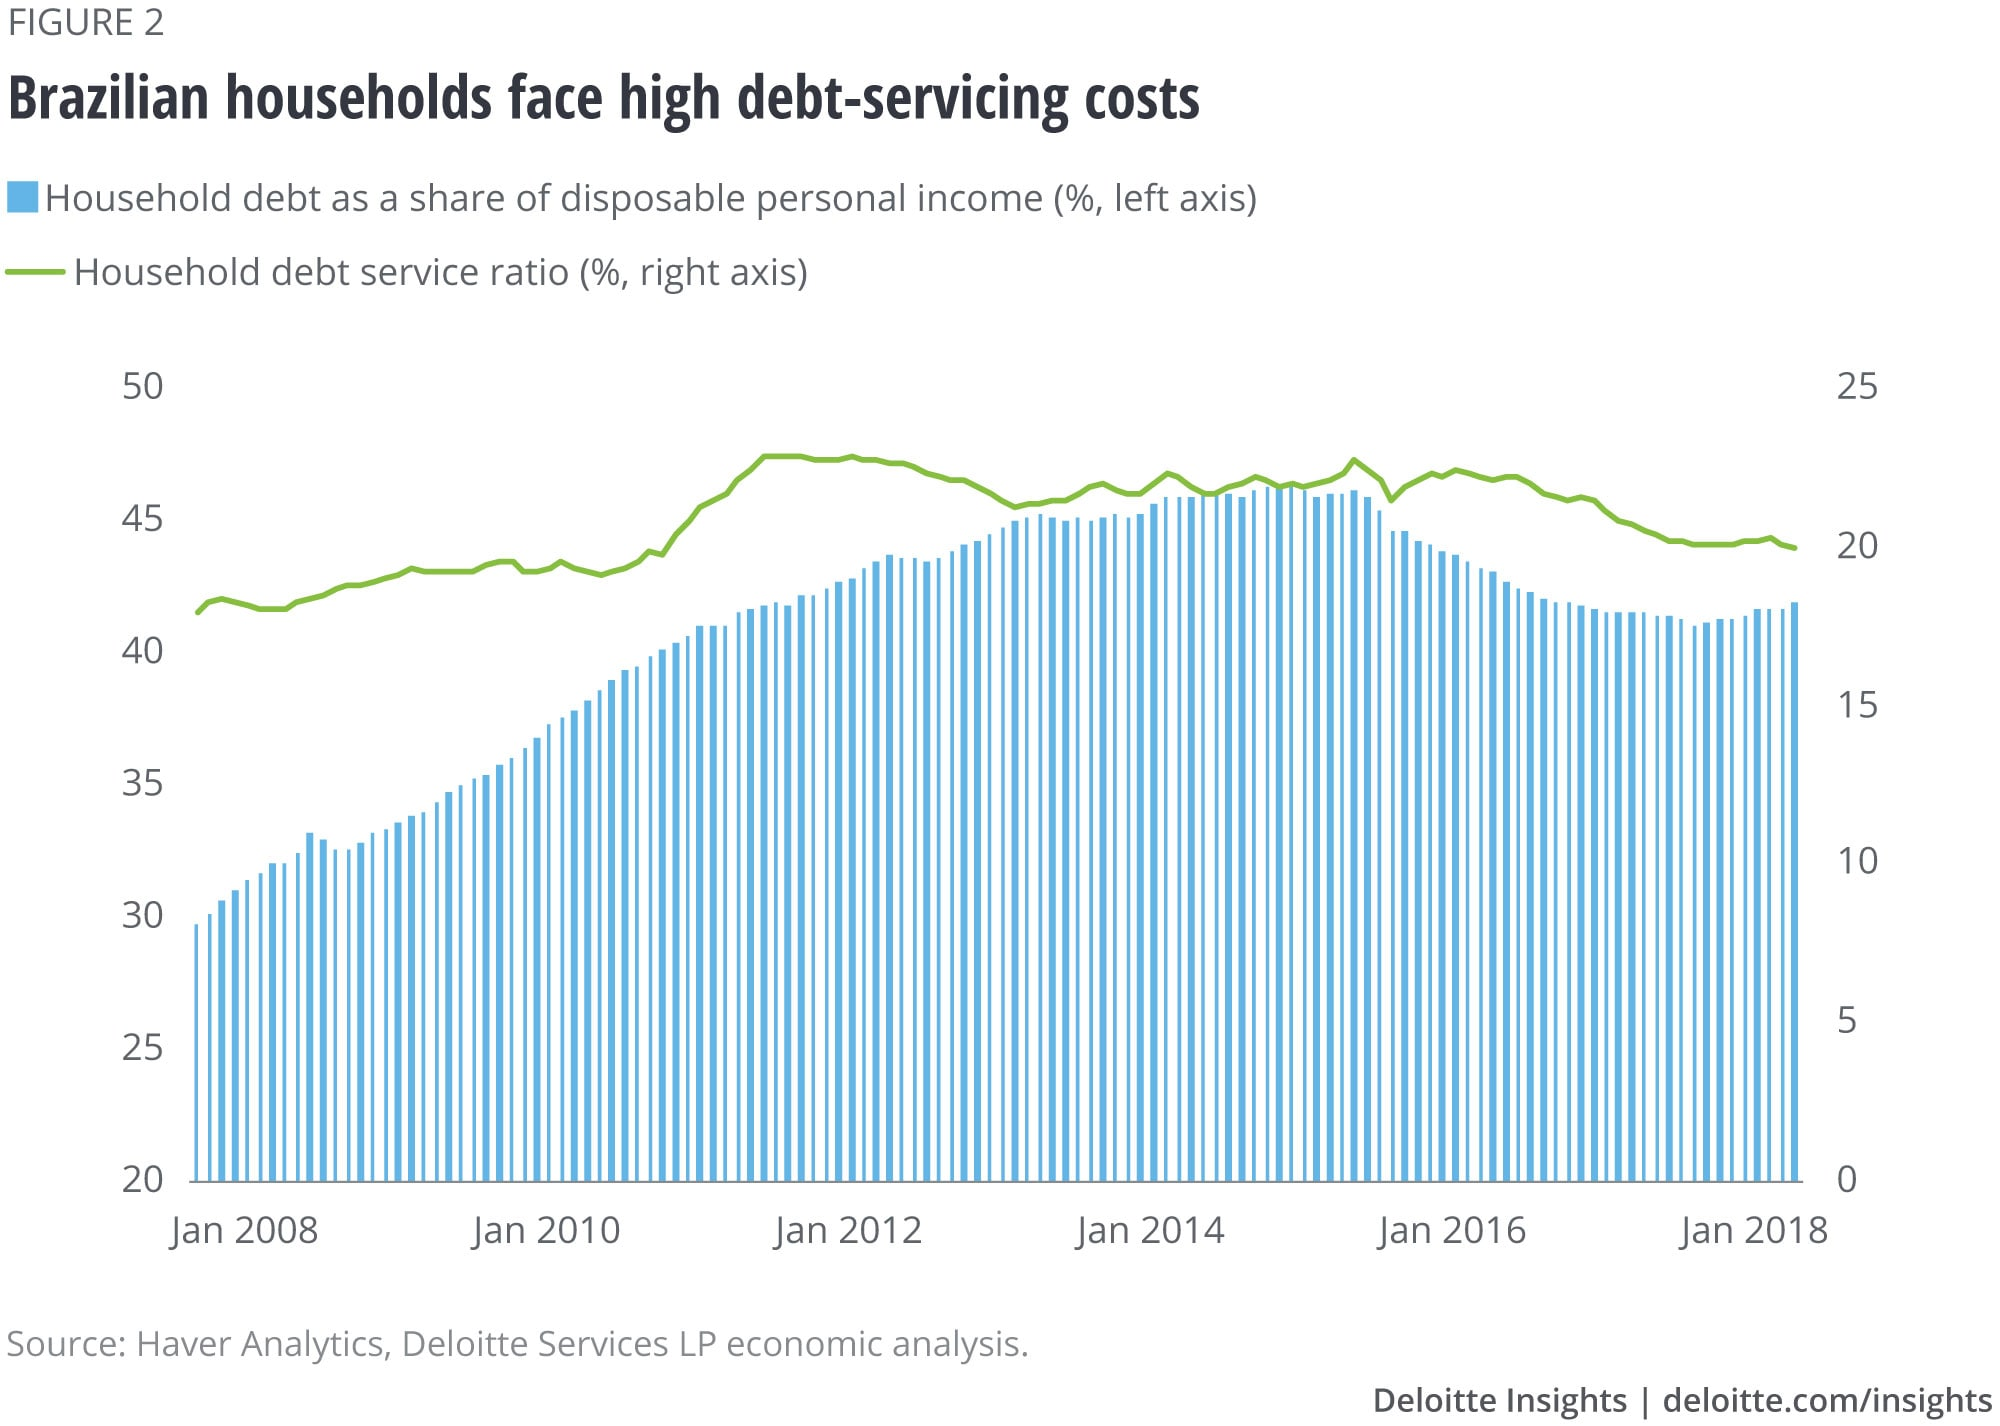 Brazilian households face high debt-servicing costs